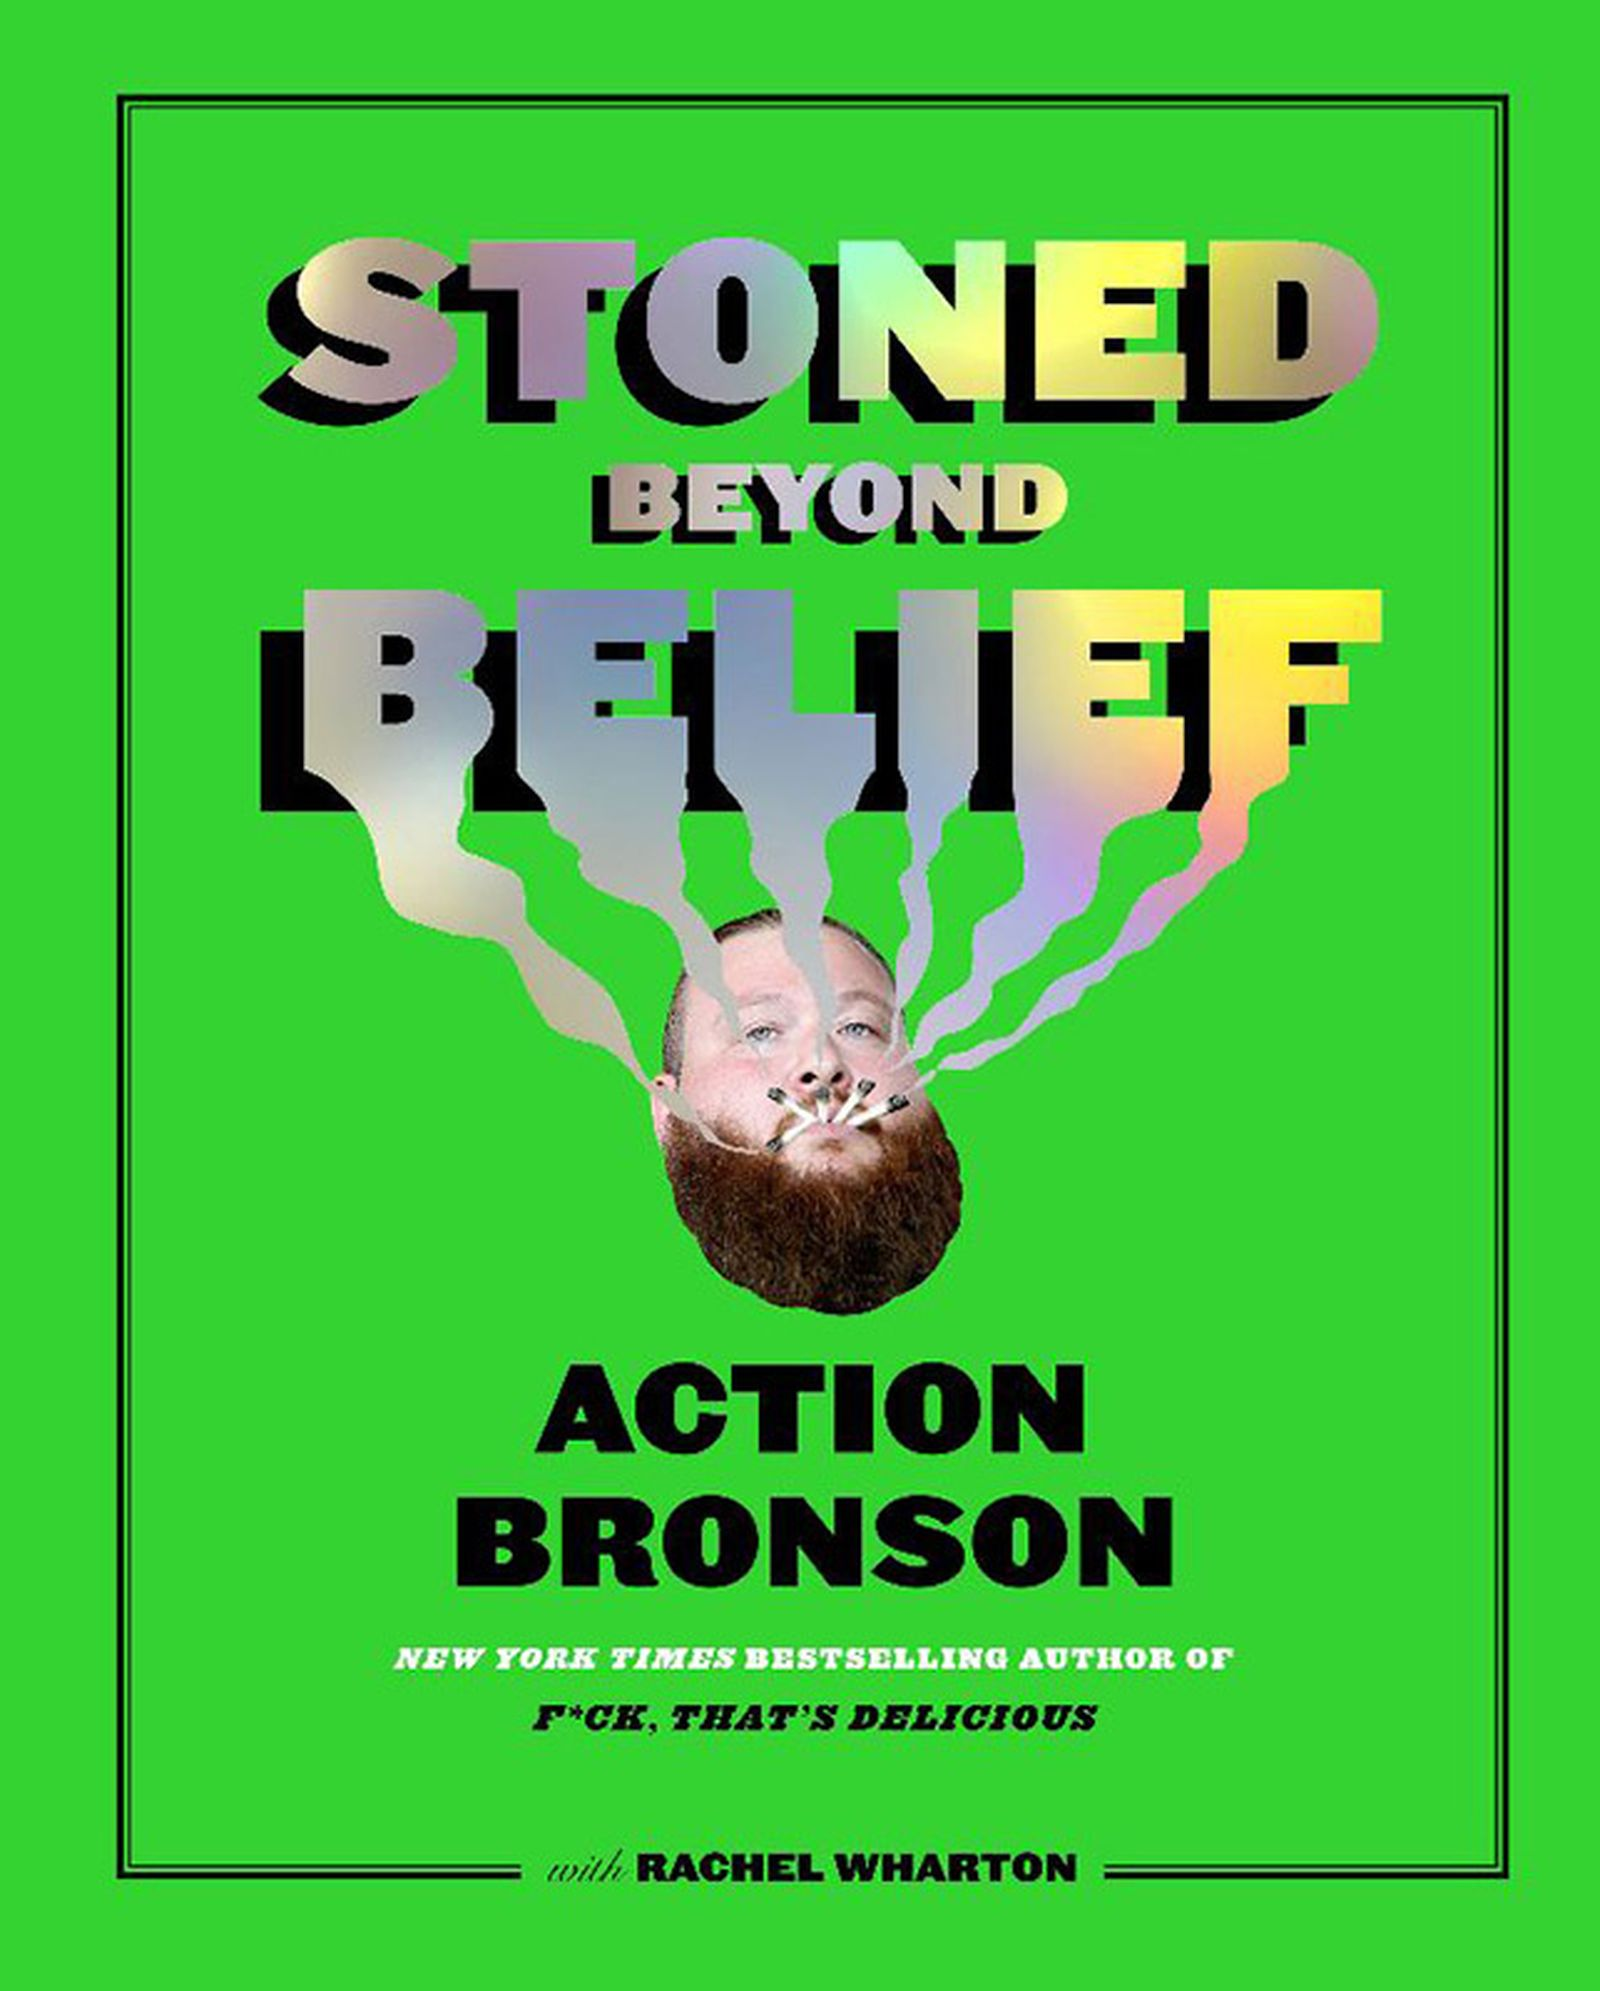 action bronson stoned beyond belief book announcement